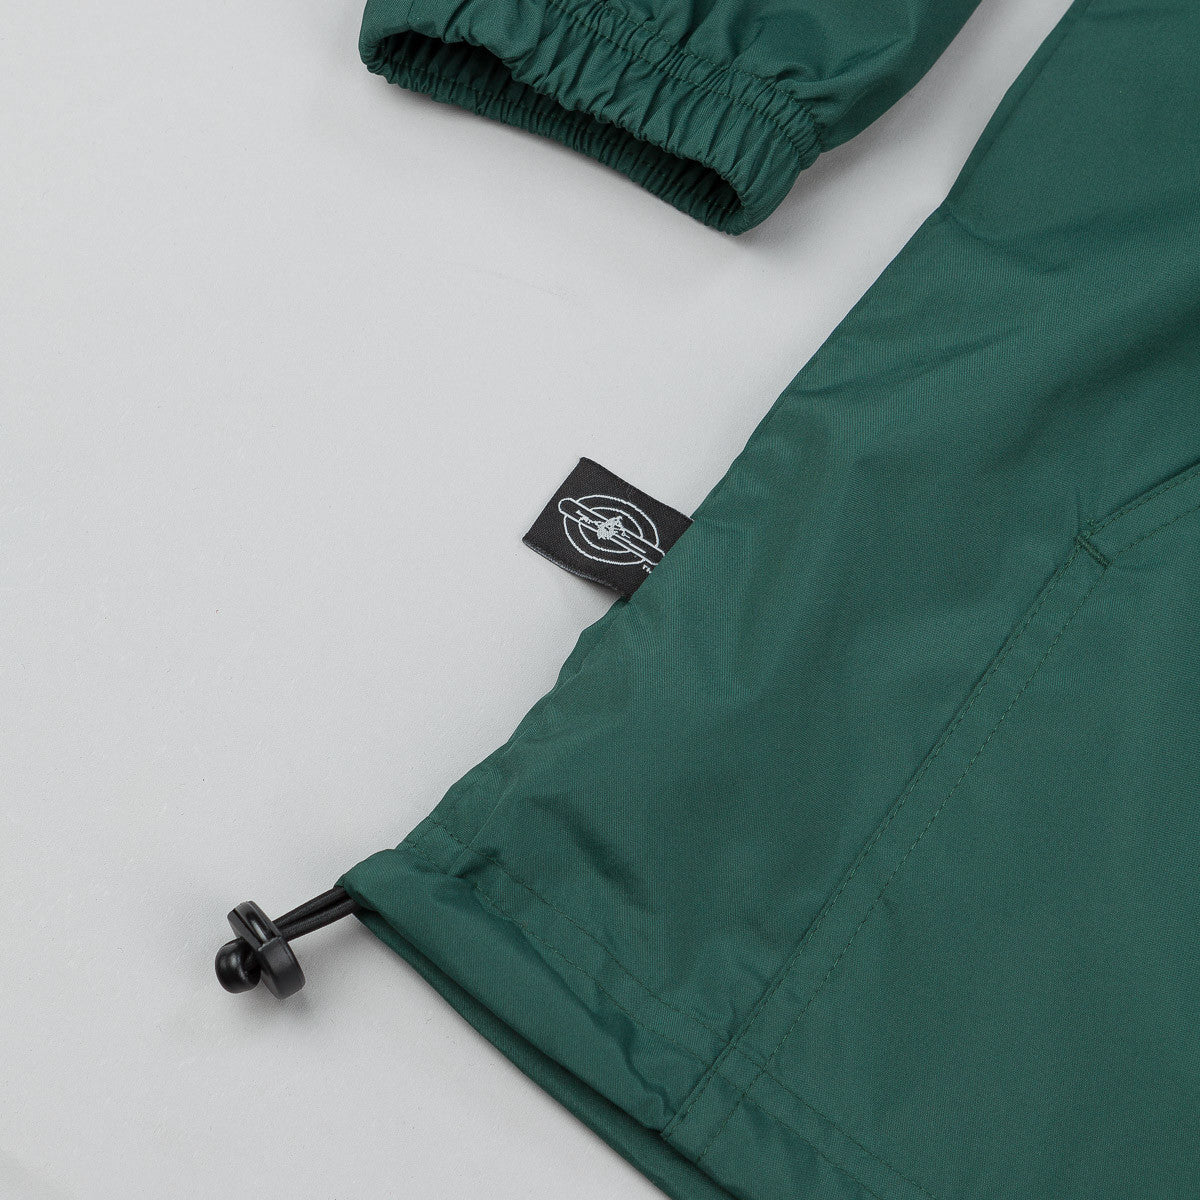 Belief Northern Windbreaker Jacket - Forest